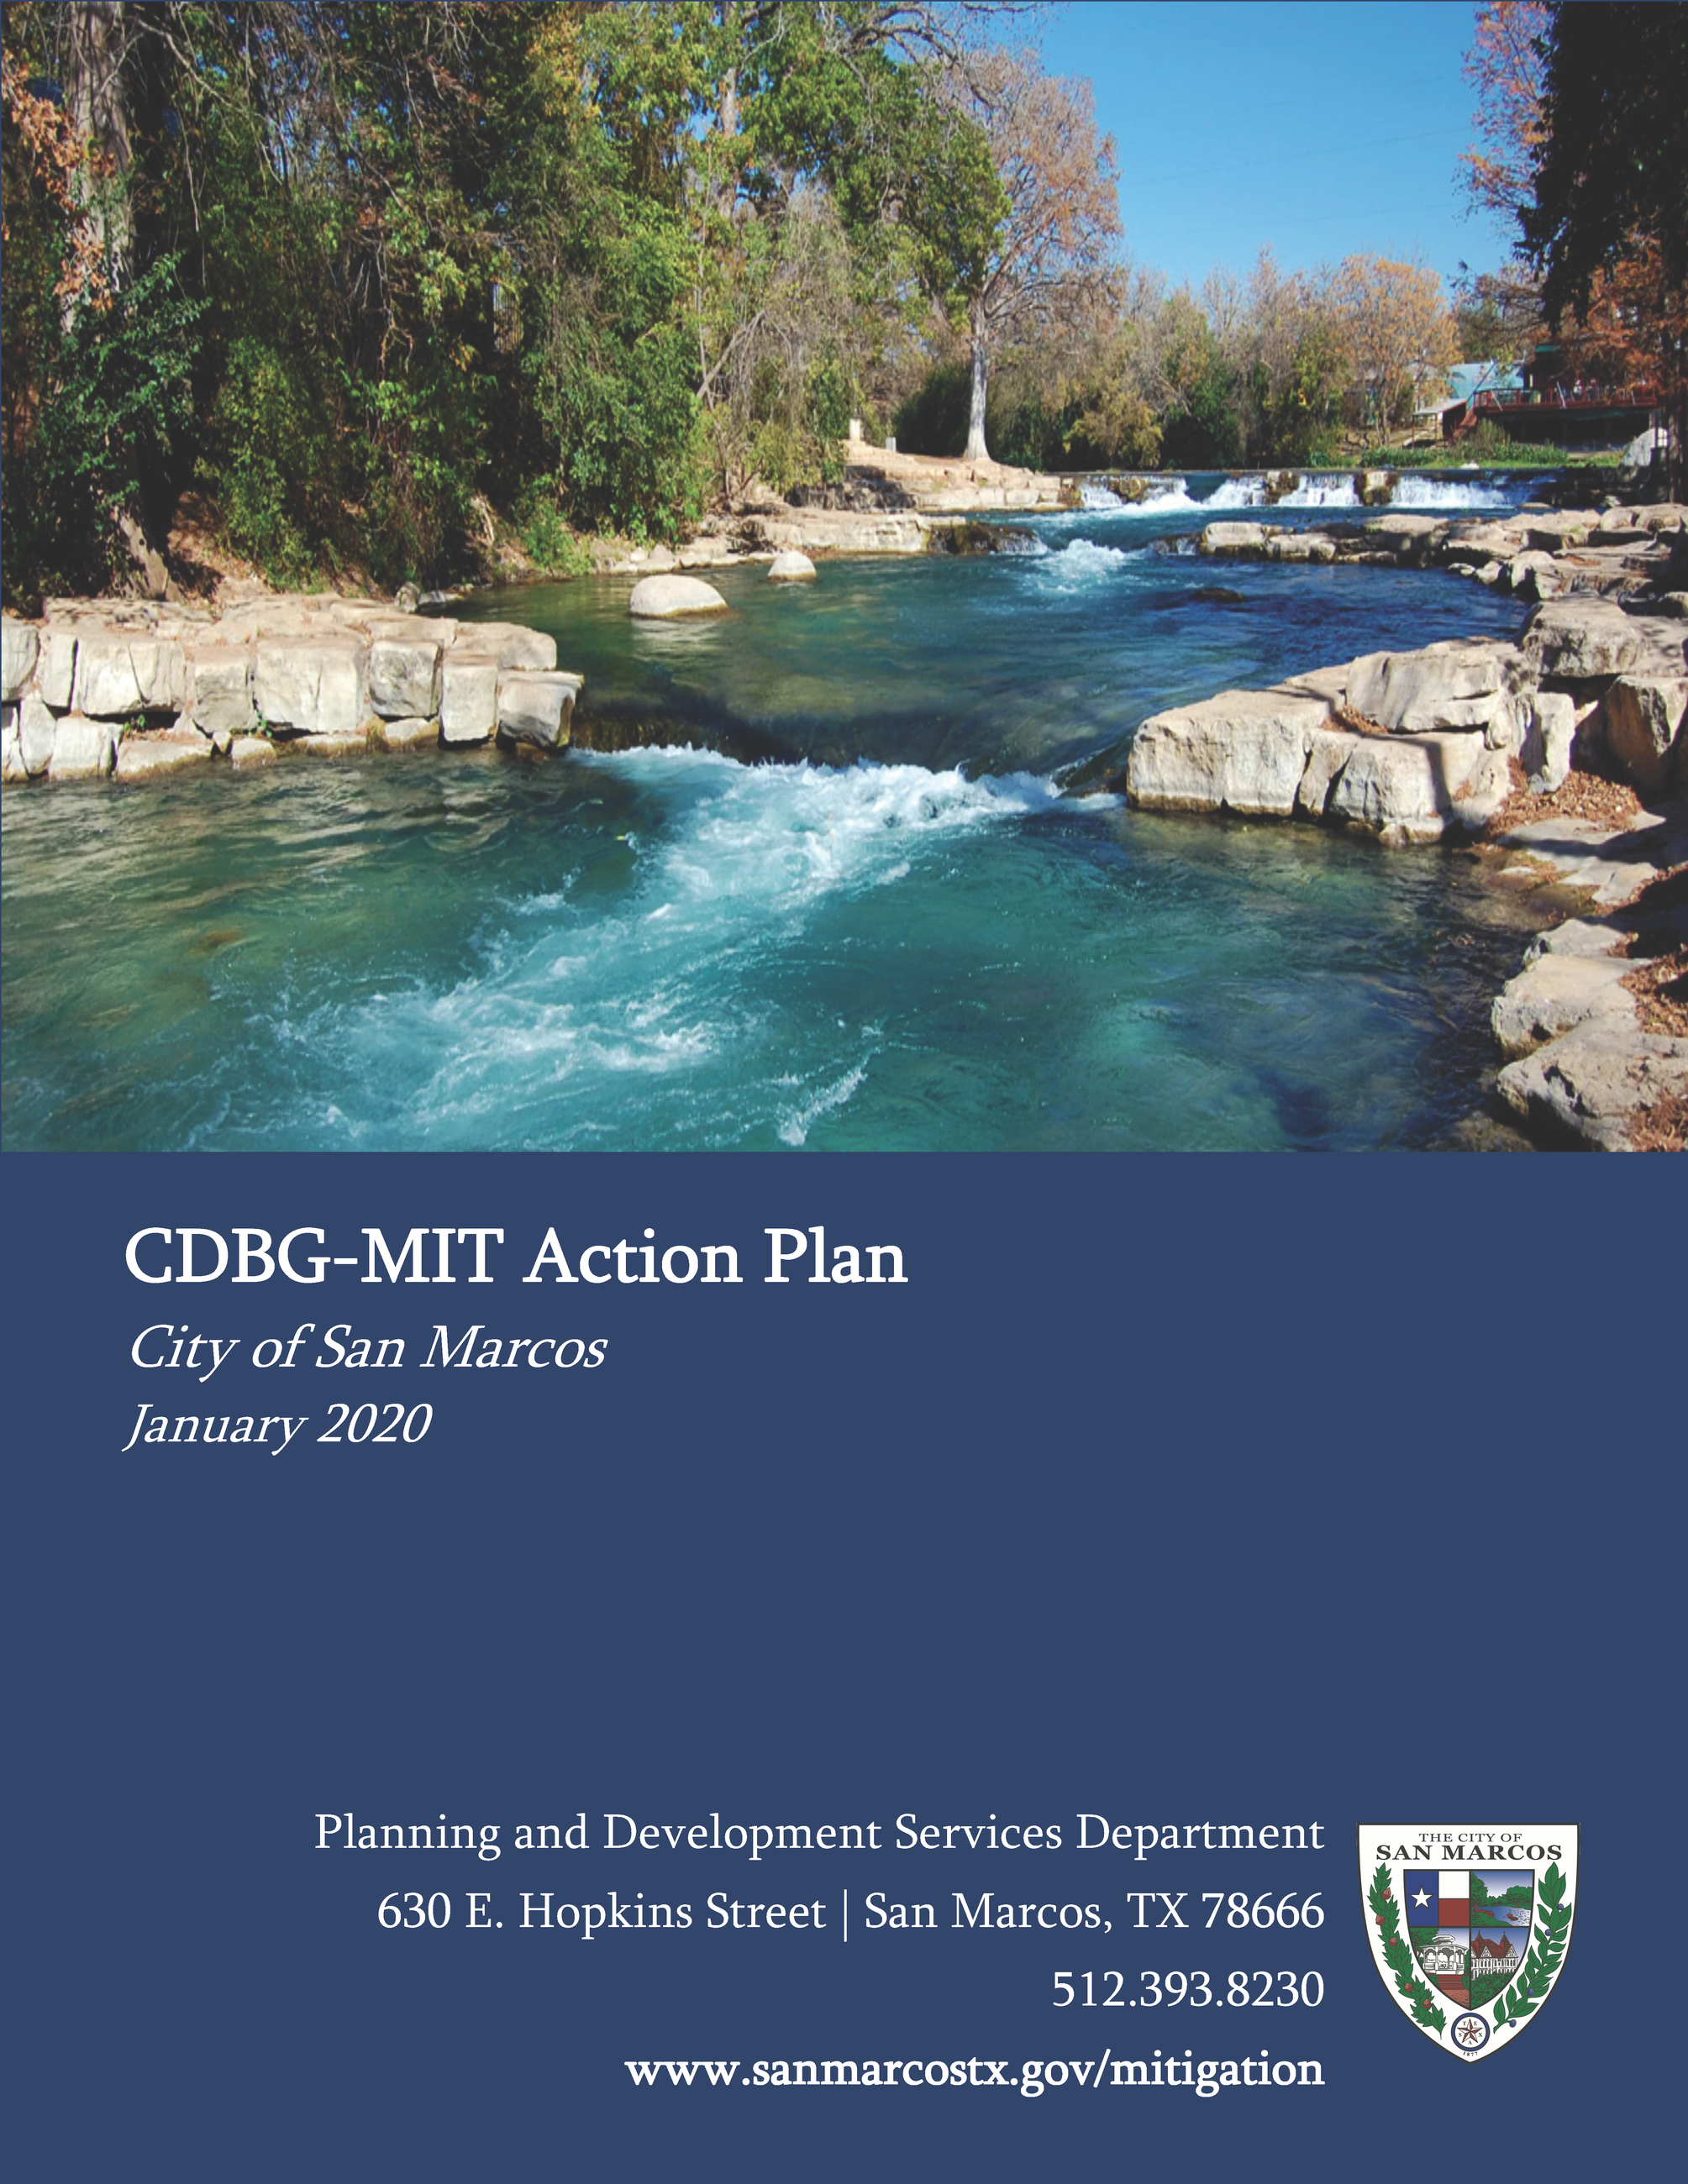 Click here to view the CDBG Mitigation Action Plan